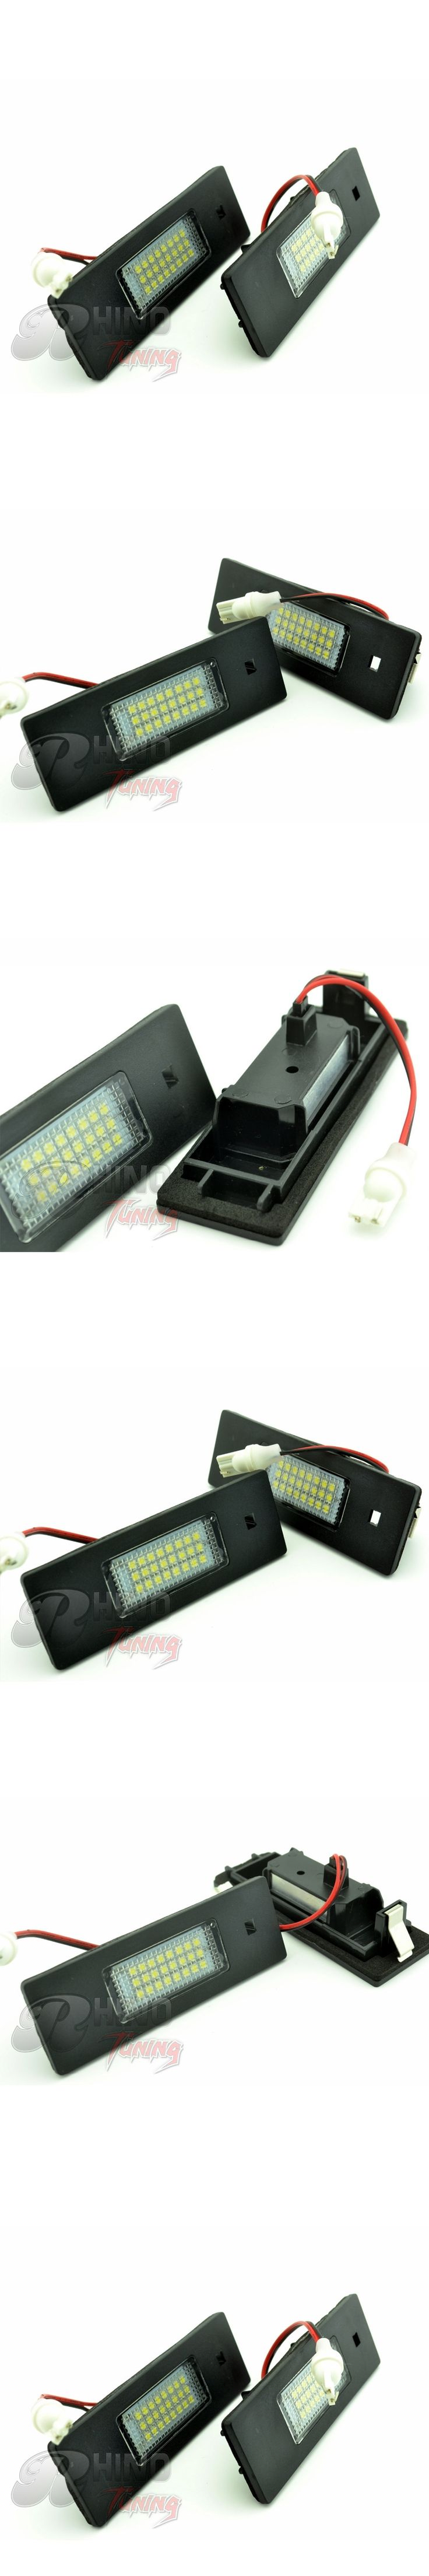 Rhino Tuning 2PC LED Car License Number Plate Light For E81 E87 E85 E86 Z4 E63 E64(M6) R55  Car License Plate Light 125